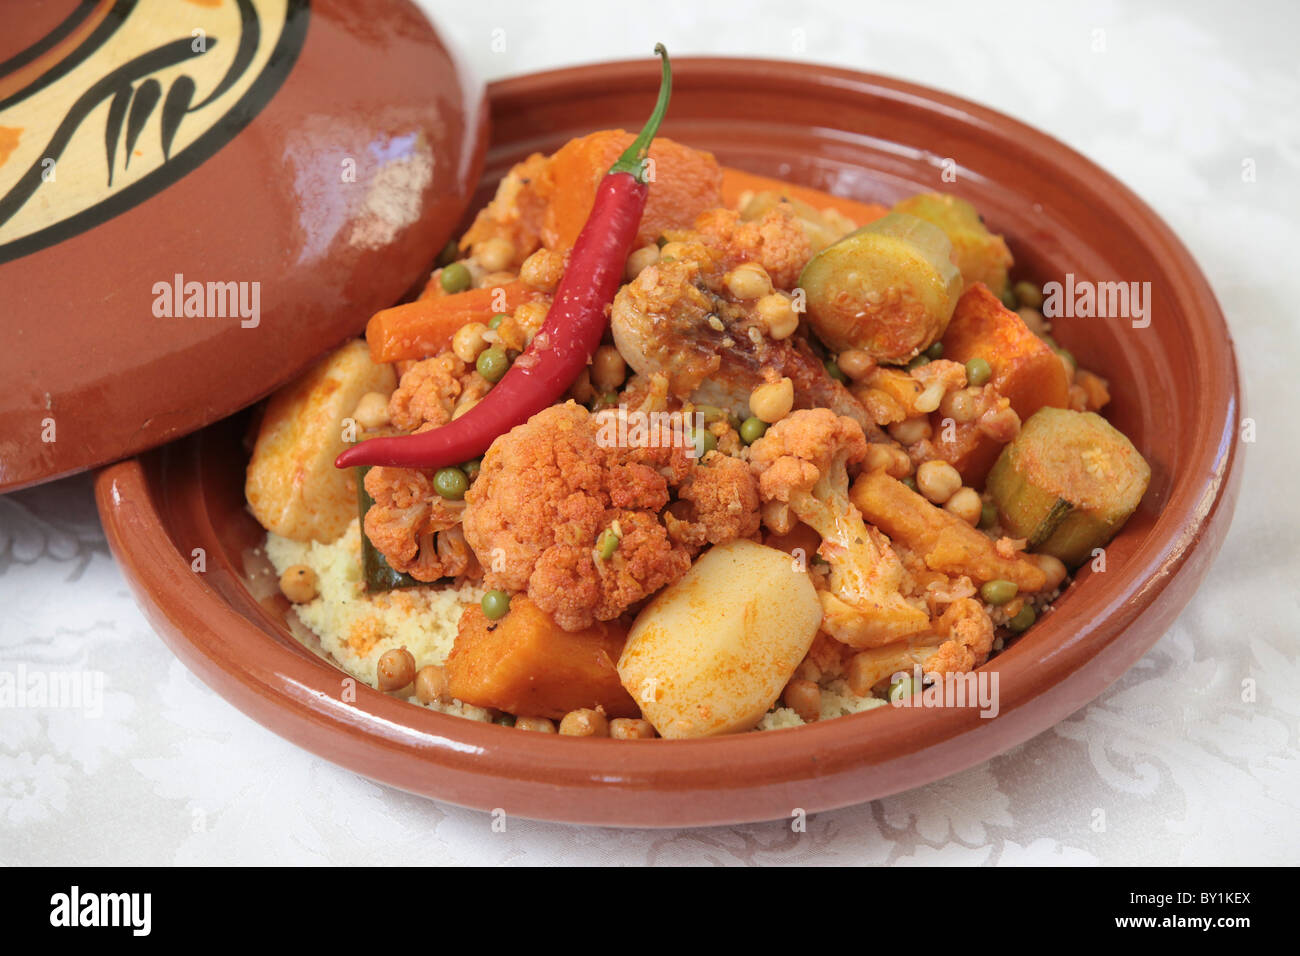 Moroccan chicken tagine stock photos moroccan chicken tagine stock moroccan food chicken tagine vegetables and chicken cooked in a tagine stock image forumfinder Images